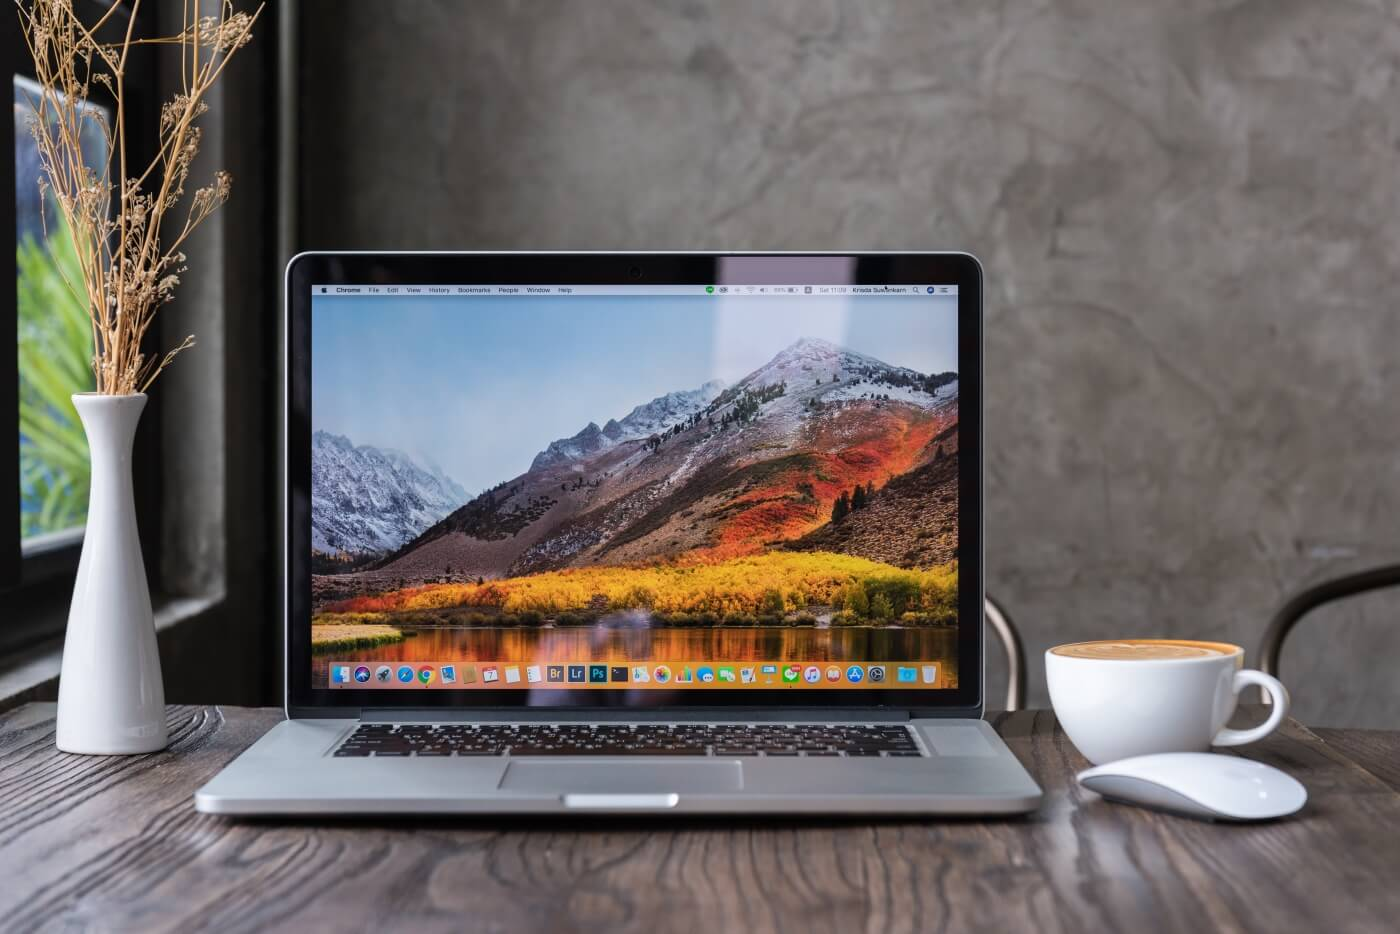 Apple's ARM-based Mac could ship by the first half of 2021